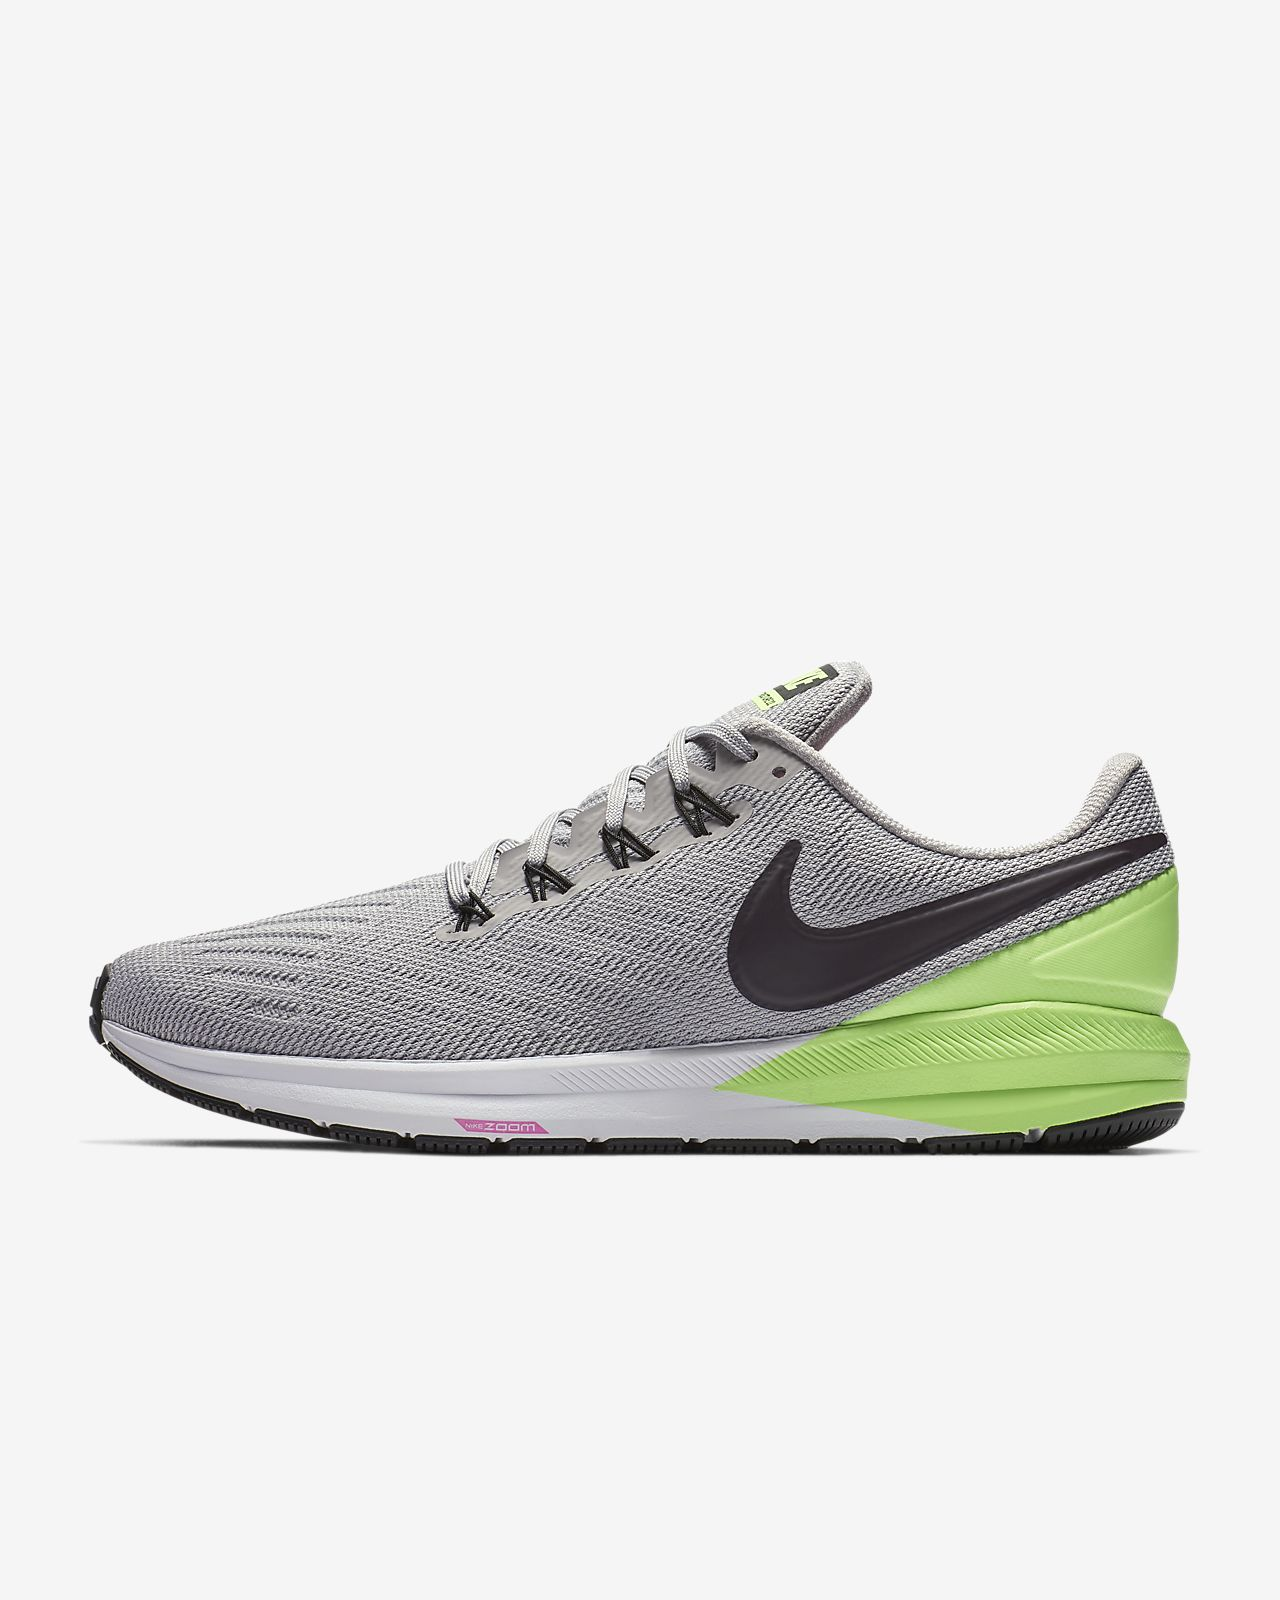 new style 1b3d7 3af77 Men s Running Shoe. Nike Air Zoom Structure 22